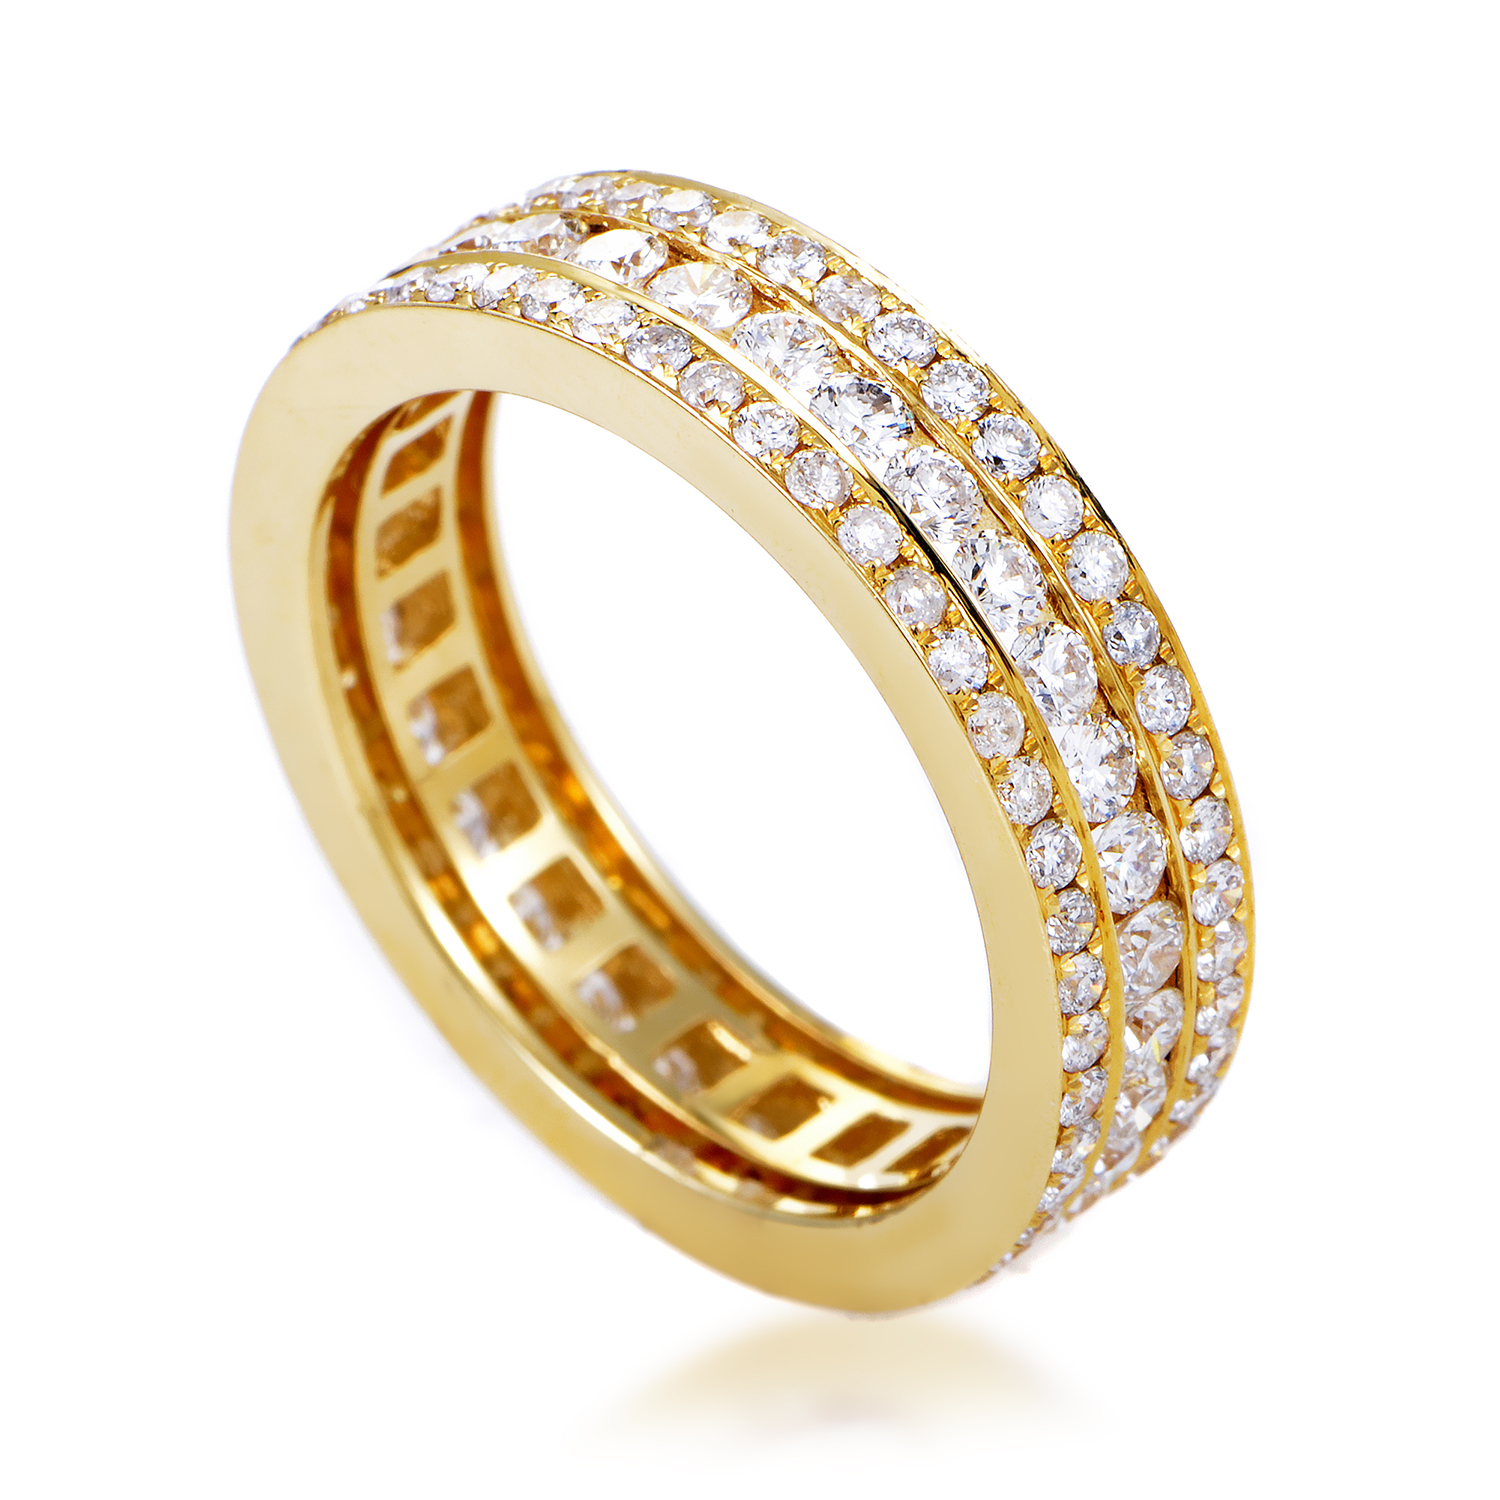 Women's 18K Yellow Gold Diamond Pave Eternity Band Ring KO7666RTZZ